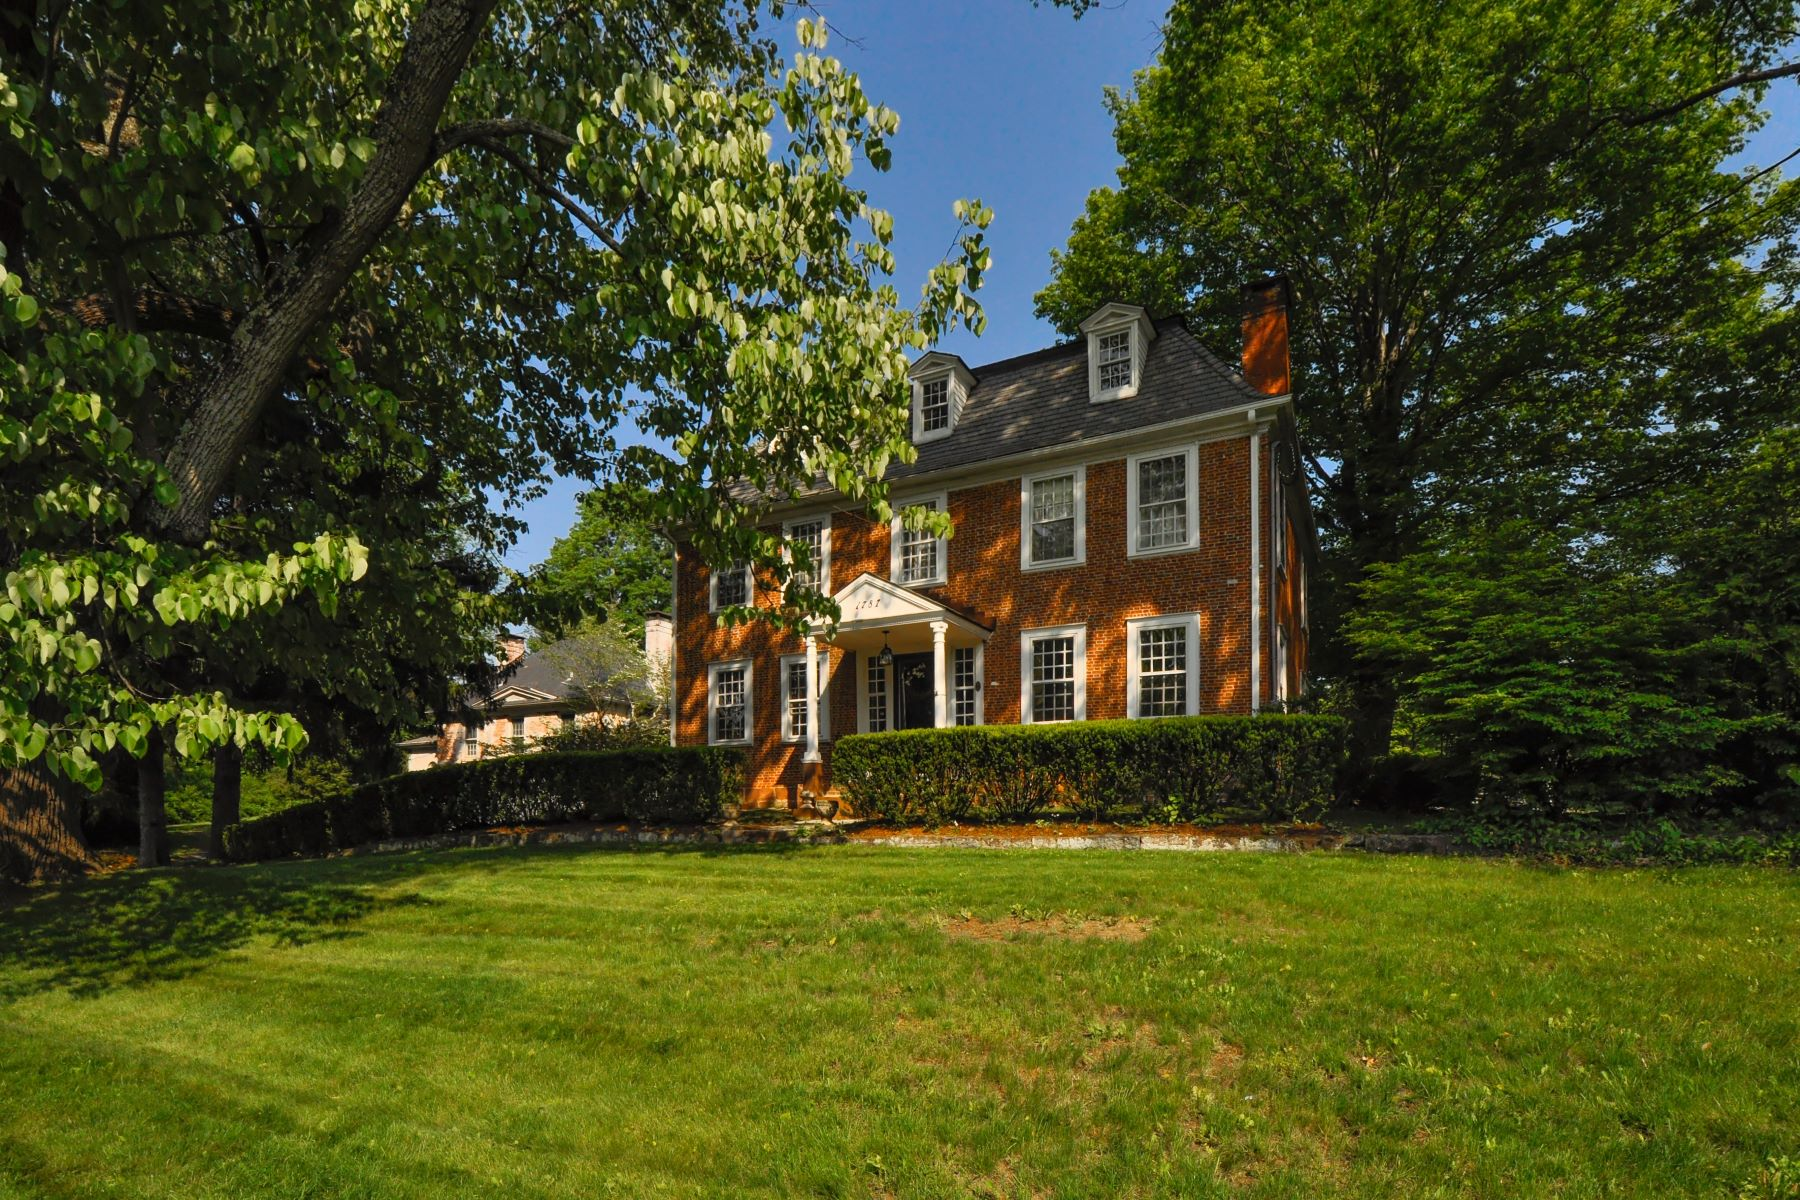 Single Family Home for Sale at Rochambeau House 1030,1050 Main Street North Southbury, Connecticut, 06488 United States